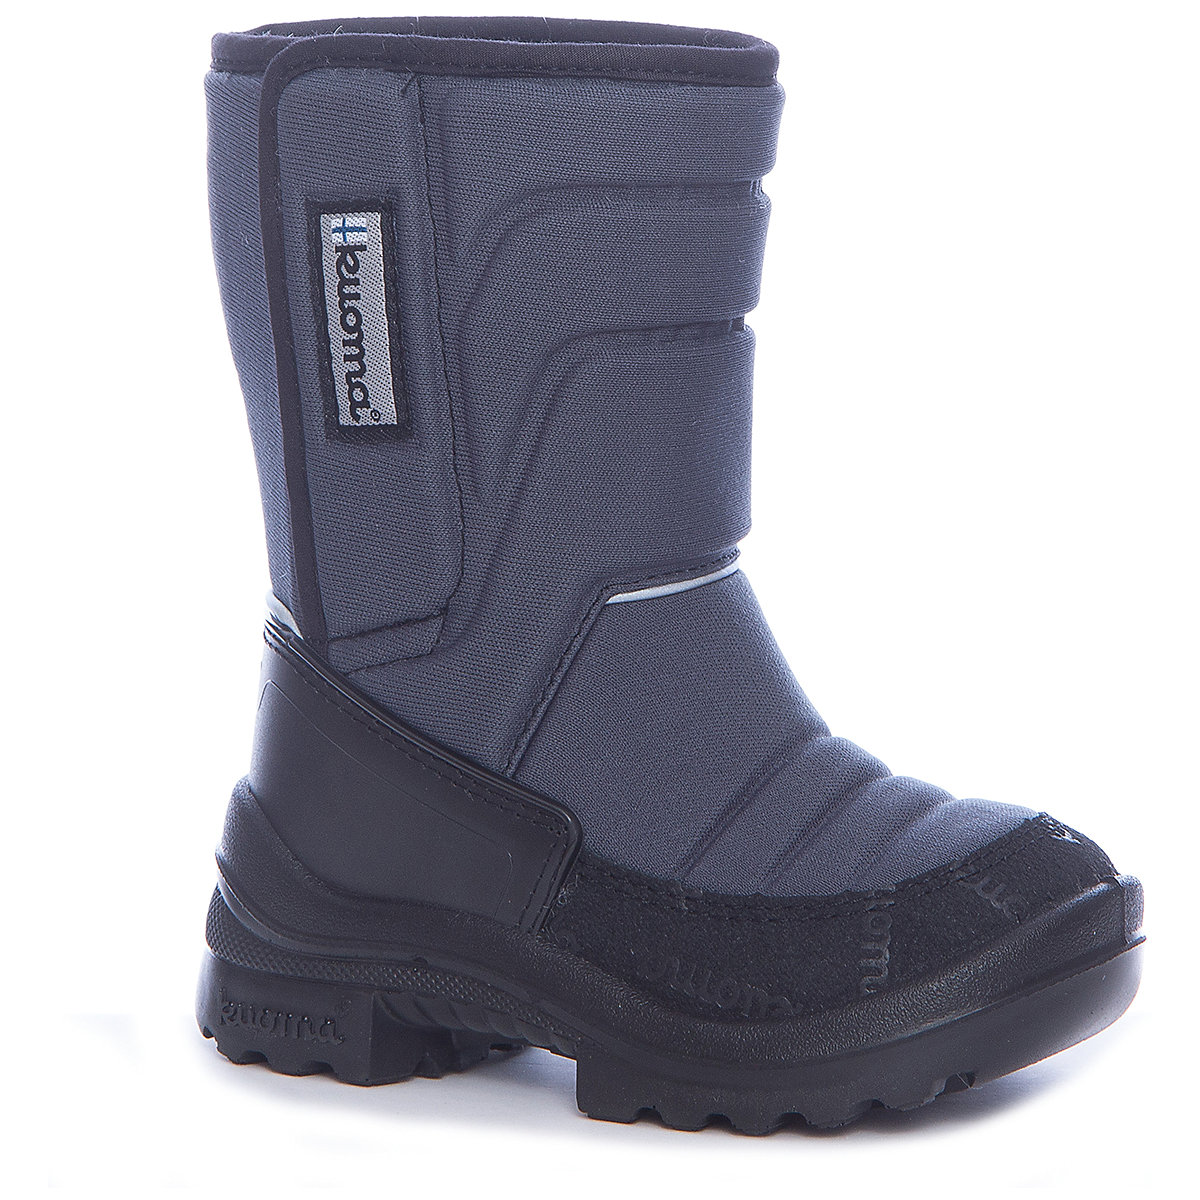 Boots KUOMA for boys 7047616 Valenki Uggi Winter shoes Children Kids jady rose black women high boots genuine leather autumn winter riding boot flat platform shoes woman straps long boots rubber